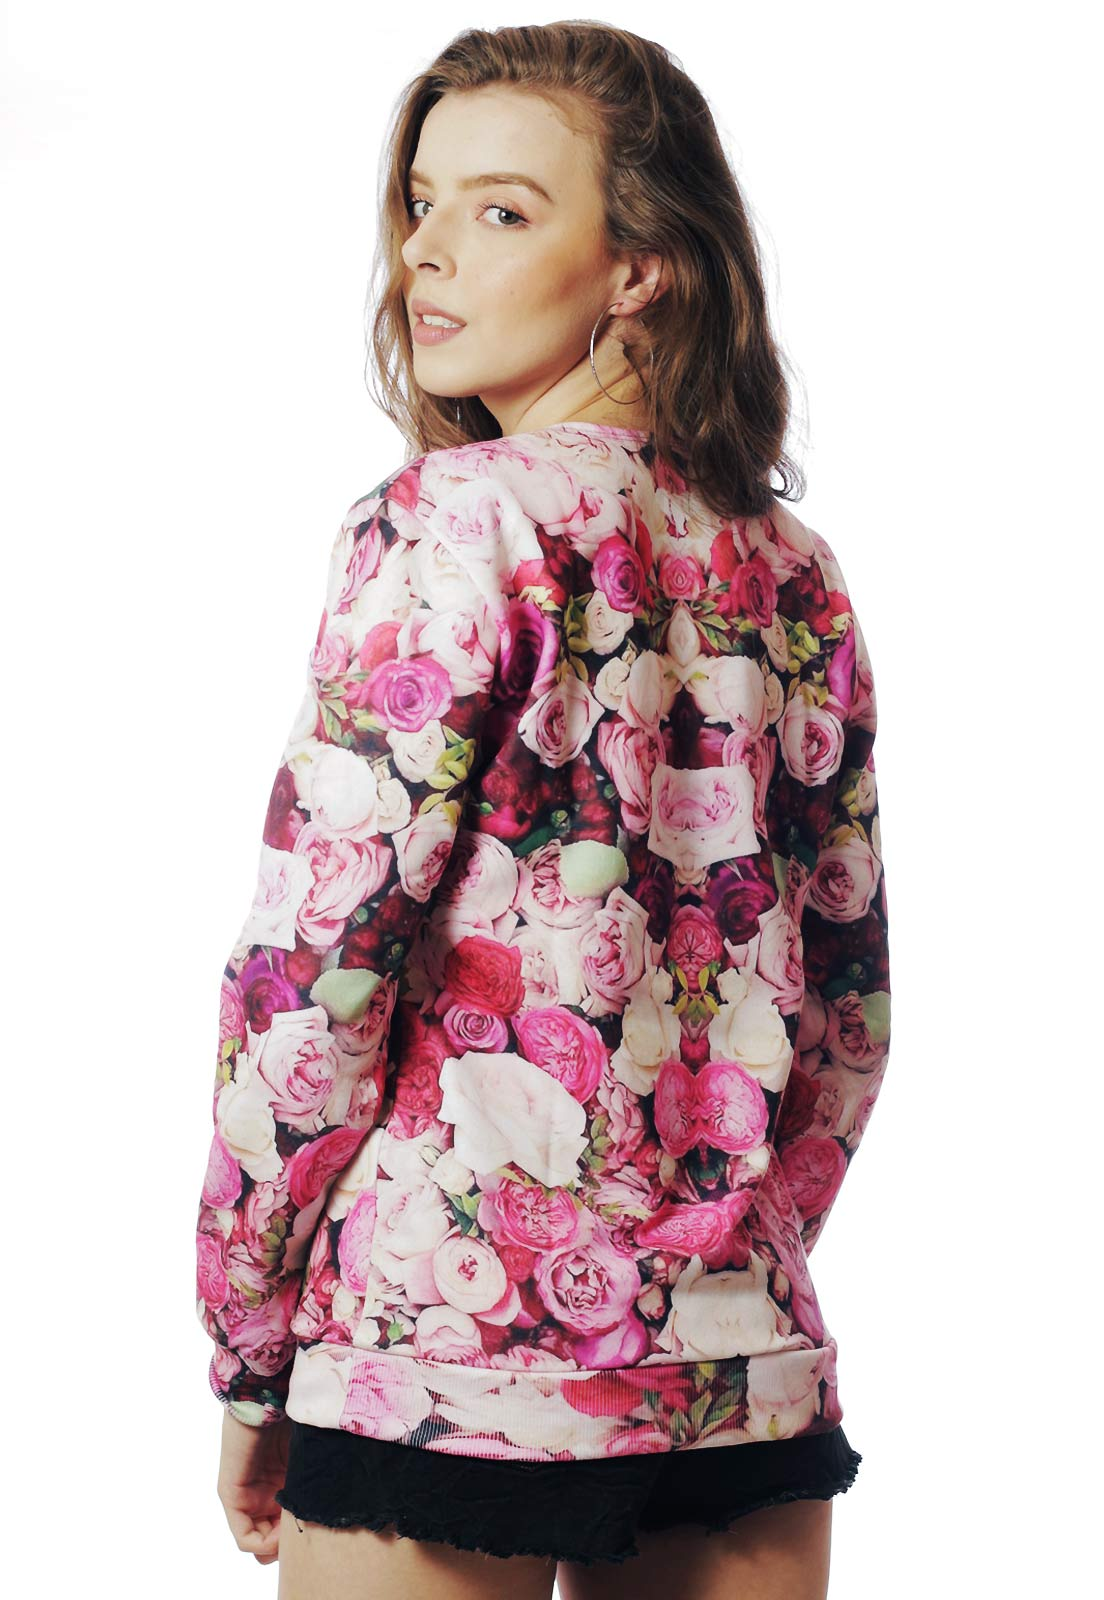 Blusa Moletom Floral Estampado Full Print Unissex Too Glam